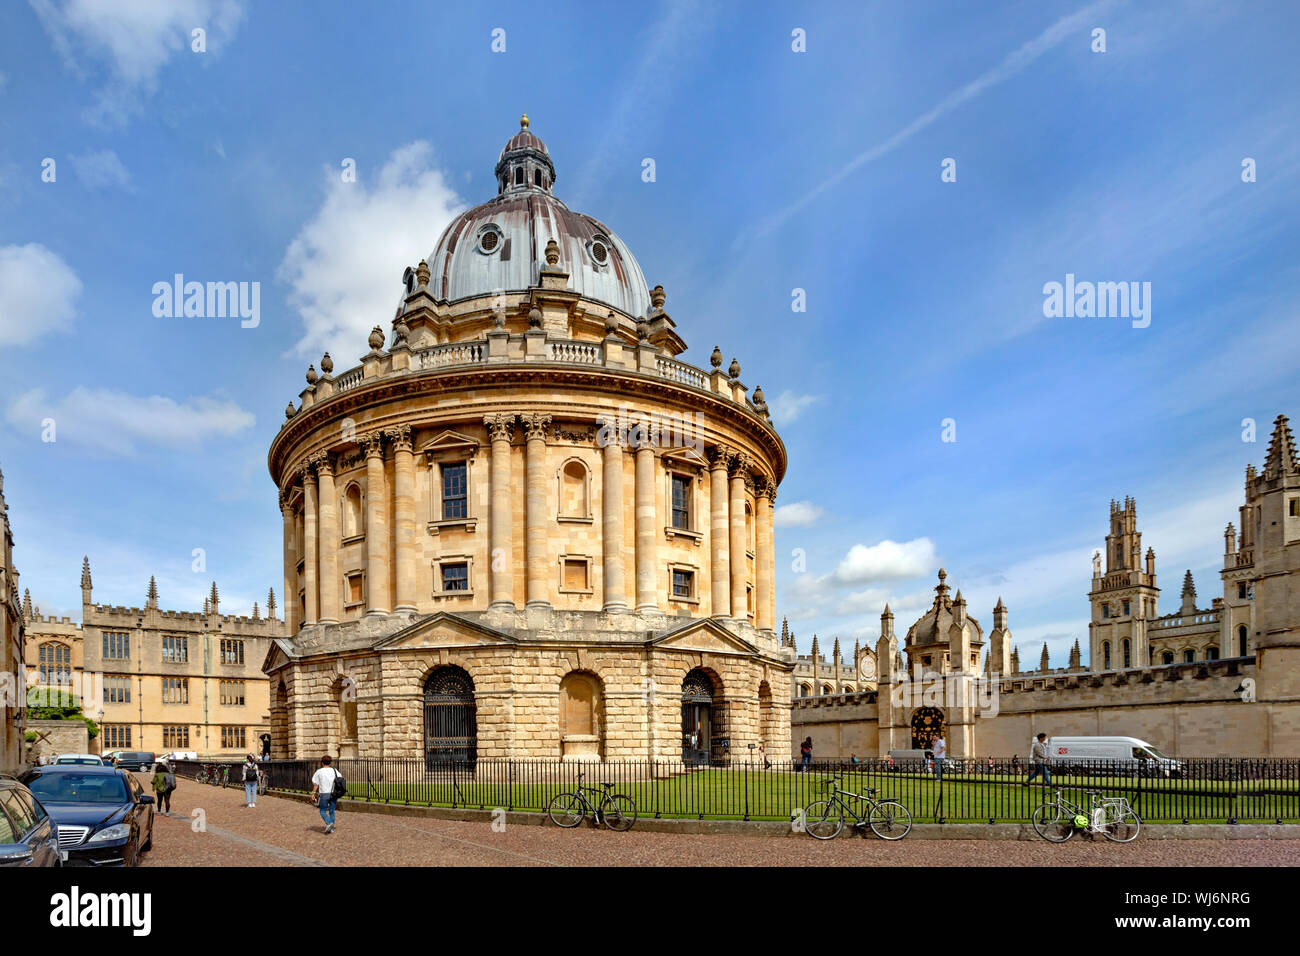 View of the Radcliffe Camera, Brasenose College and All Souls College from Radcliffe Square, Oxford, England, United Kingdom. Stock Photo